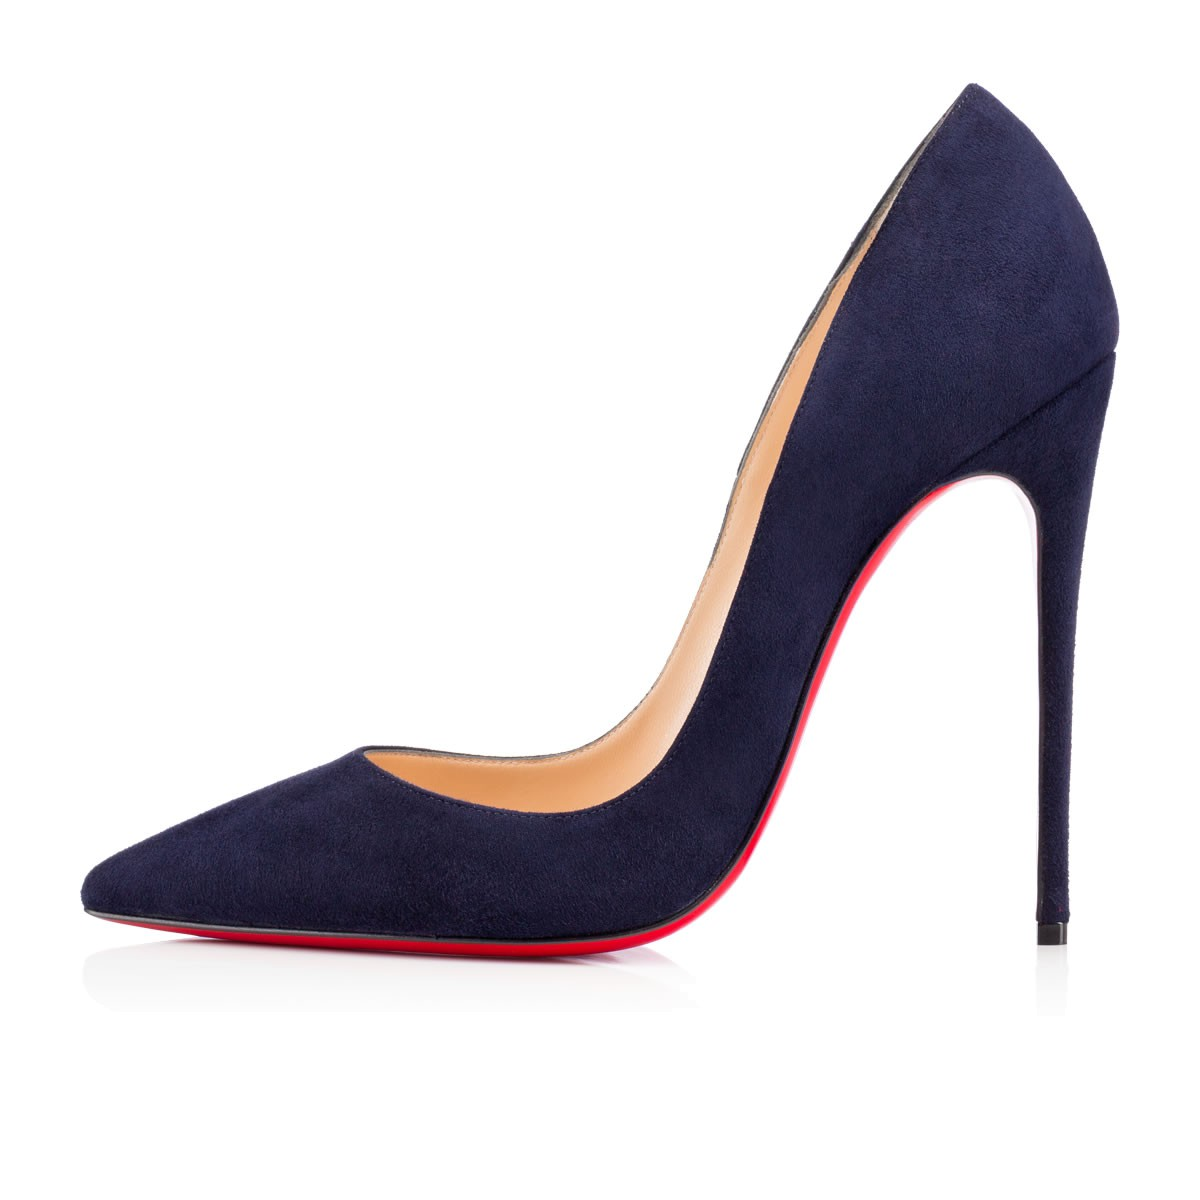 CHRISTIAN LOUBOUTIN Midnight Blue Suede 'So Kate 120' Stiletto Pumps in Navy